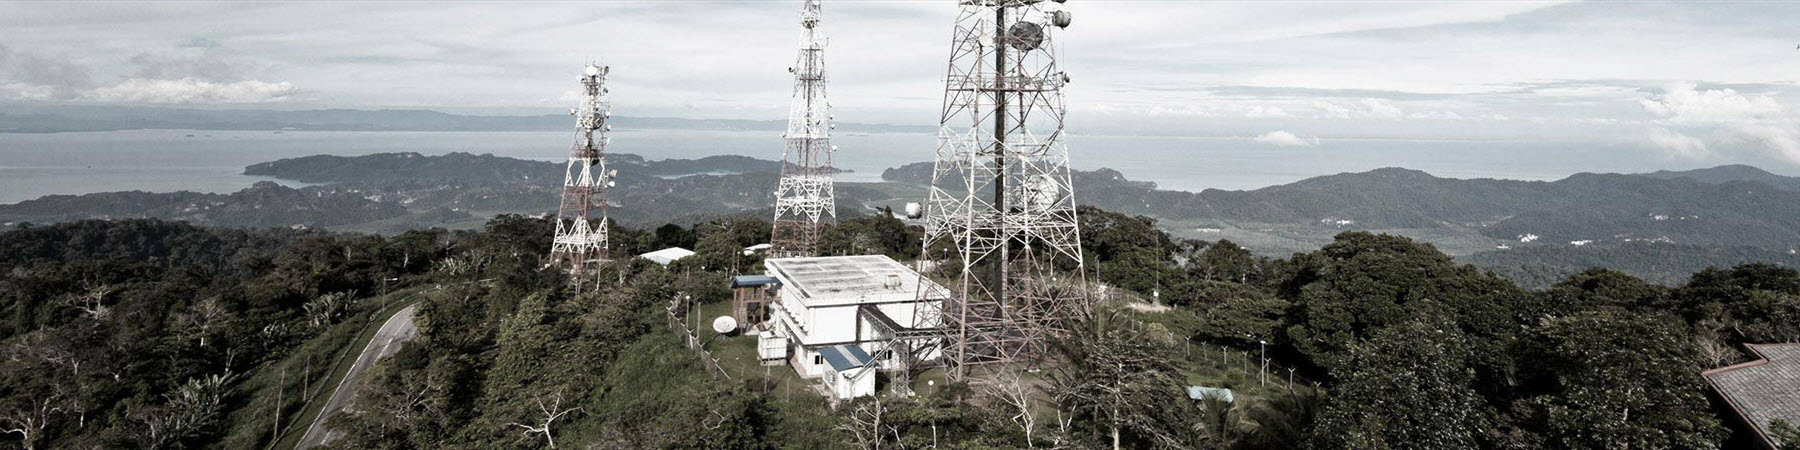 GSM MOBILE TOWERS